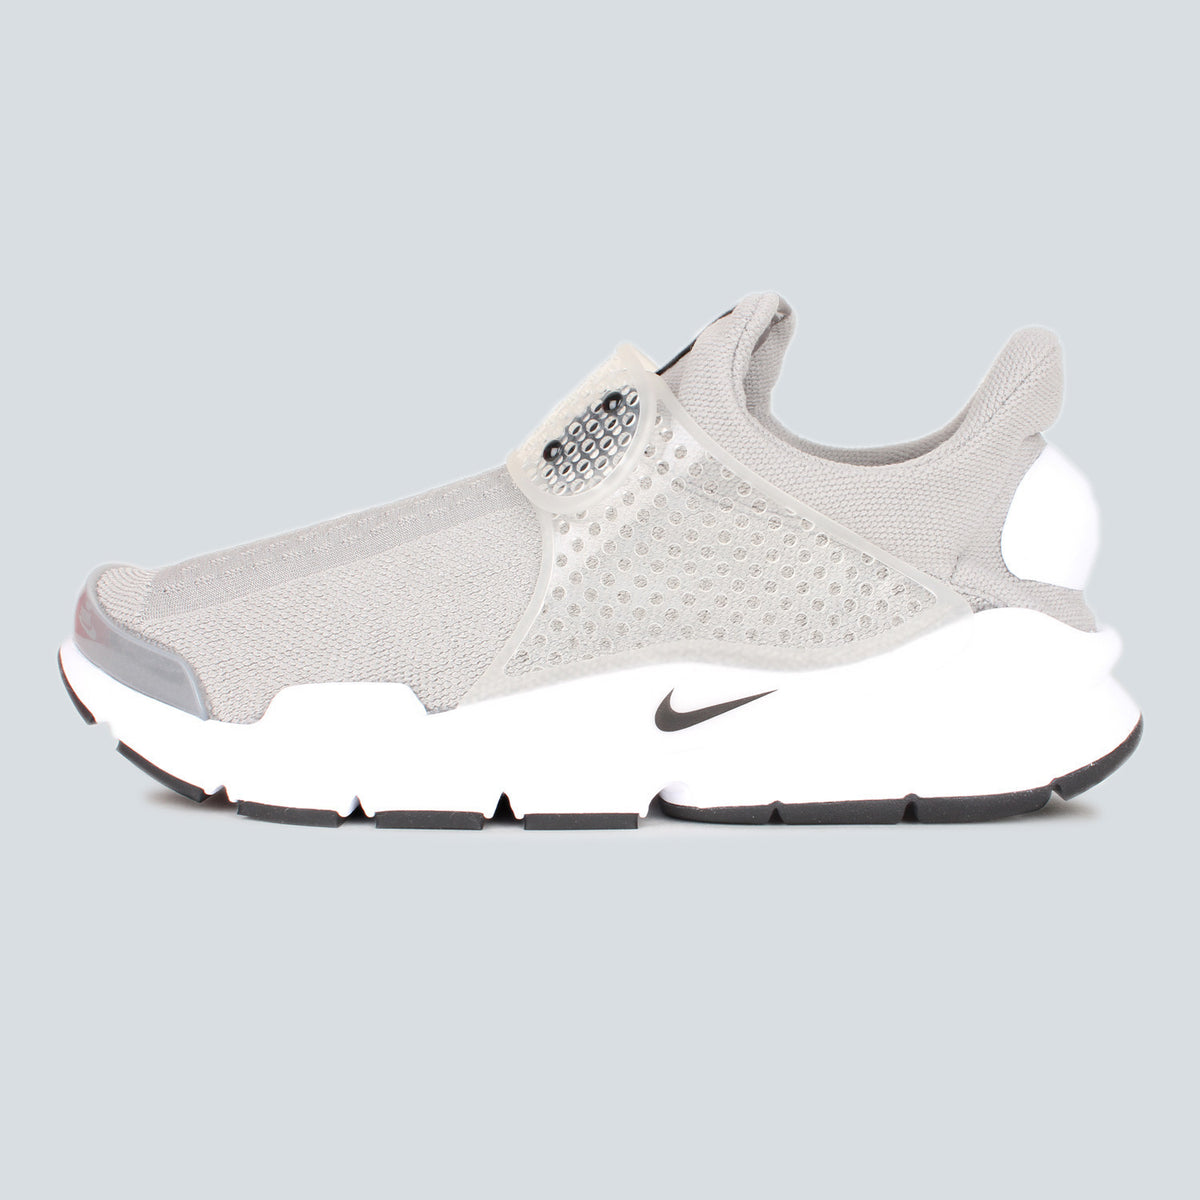 NIKE - SOCK DART - MEDIUM GREY/BLACK WHITE